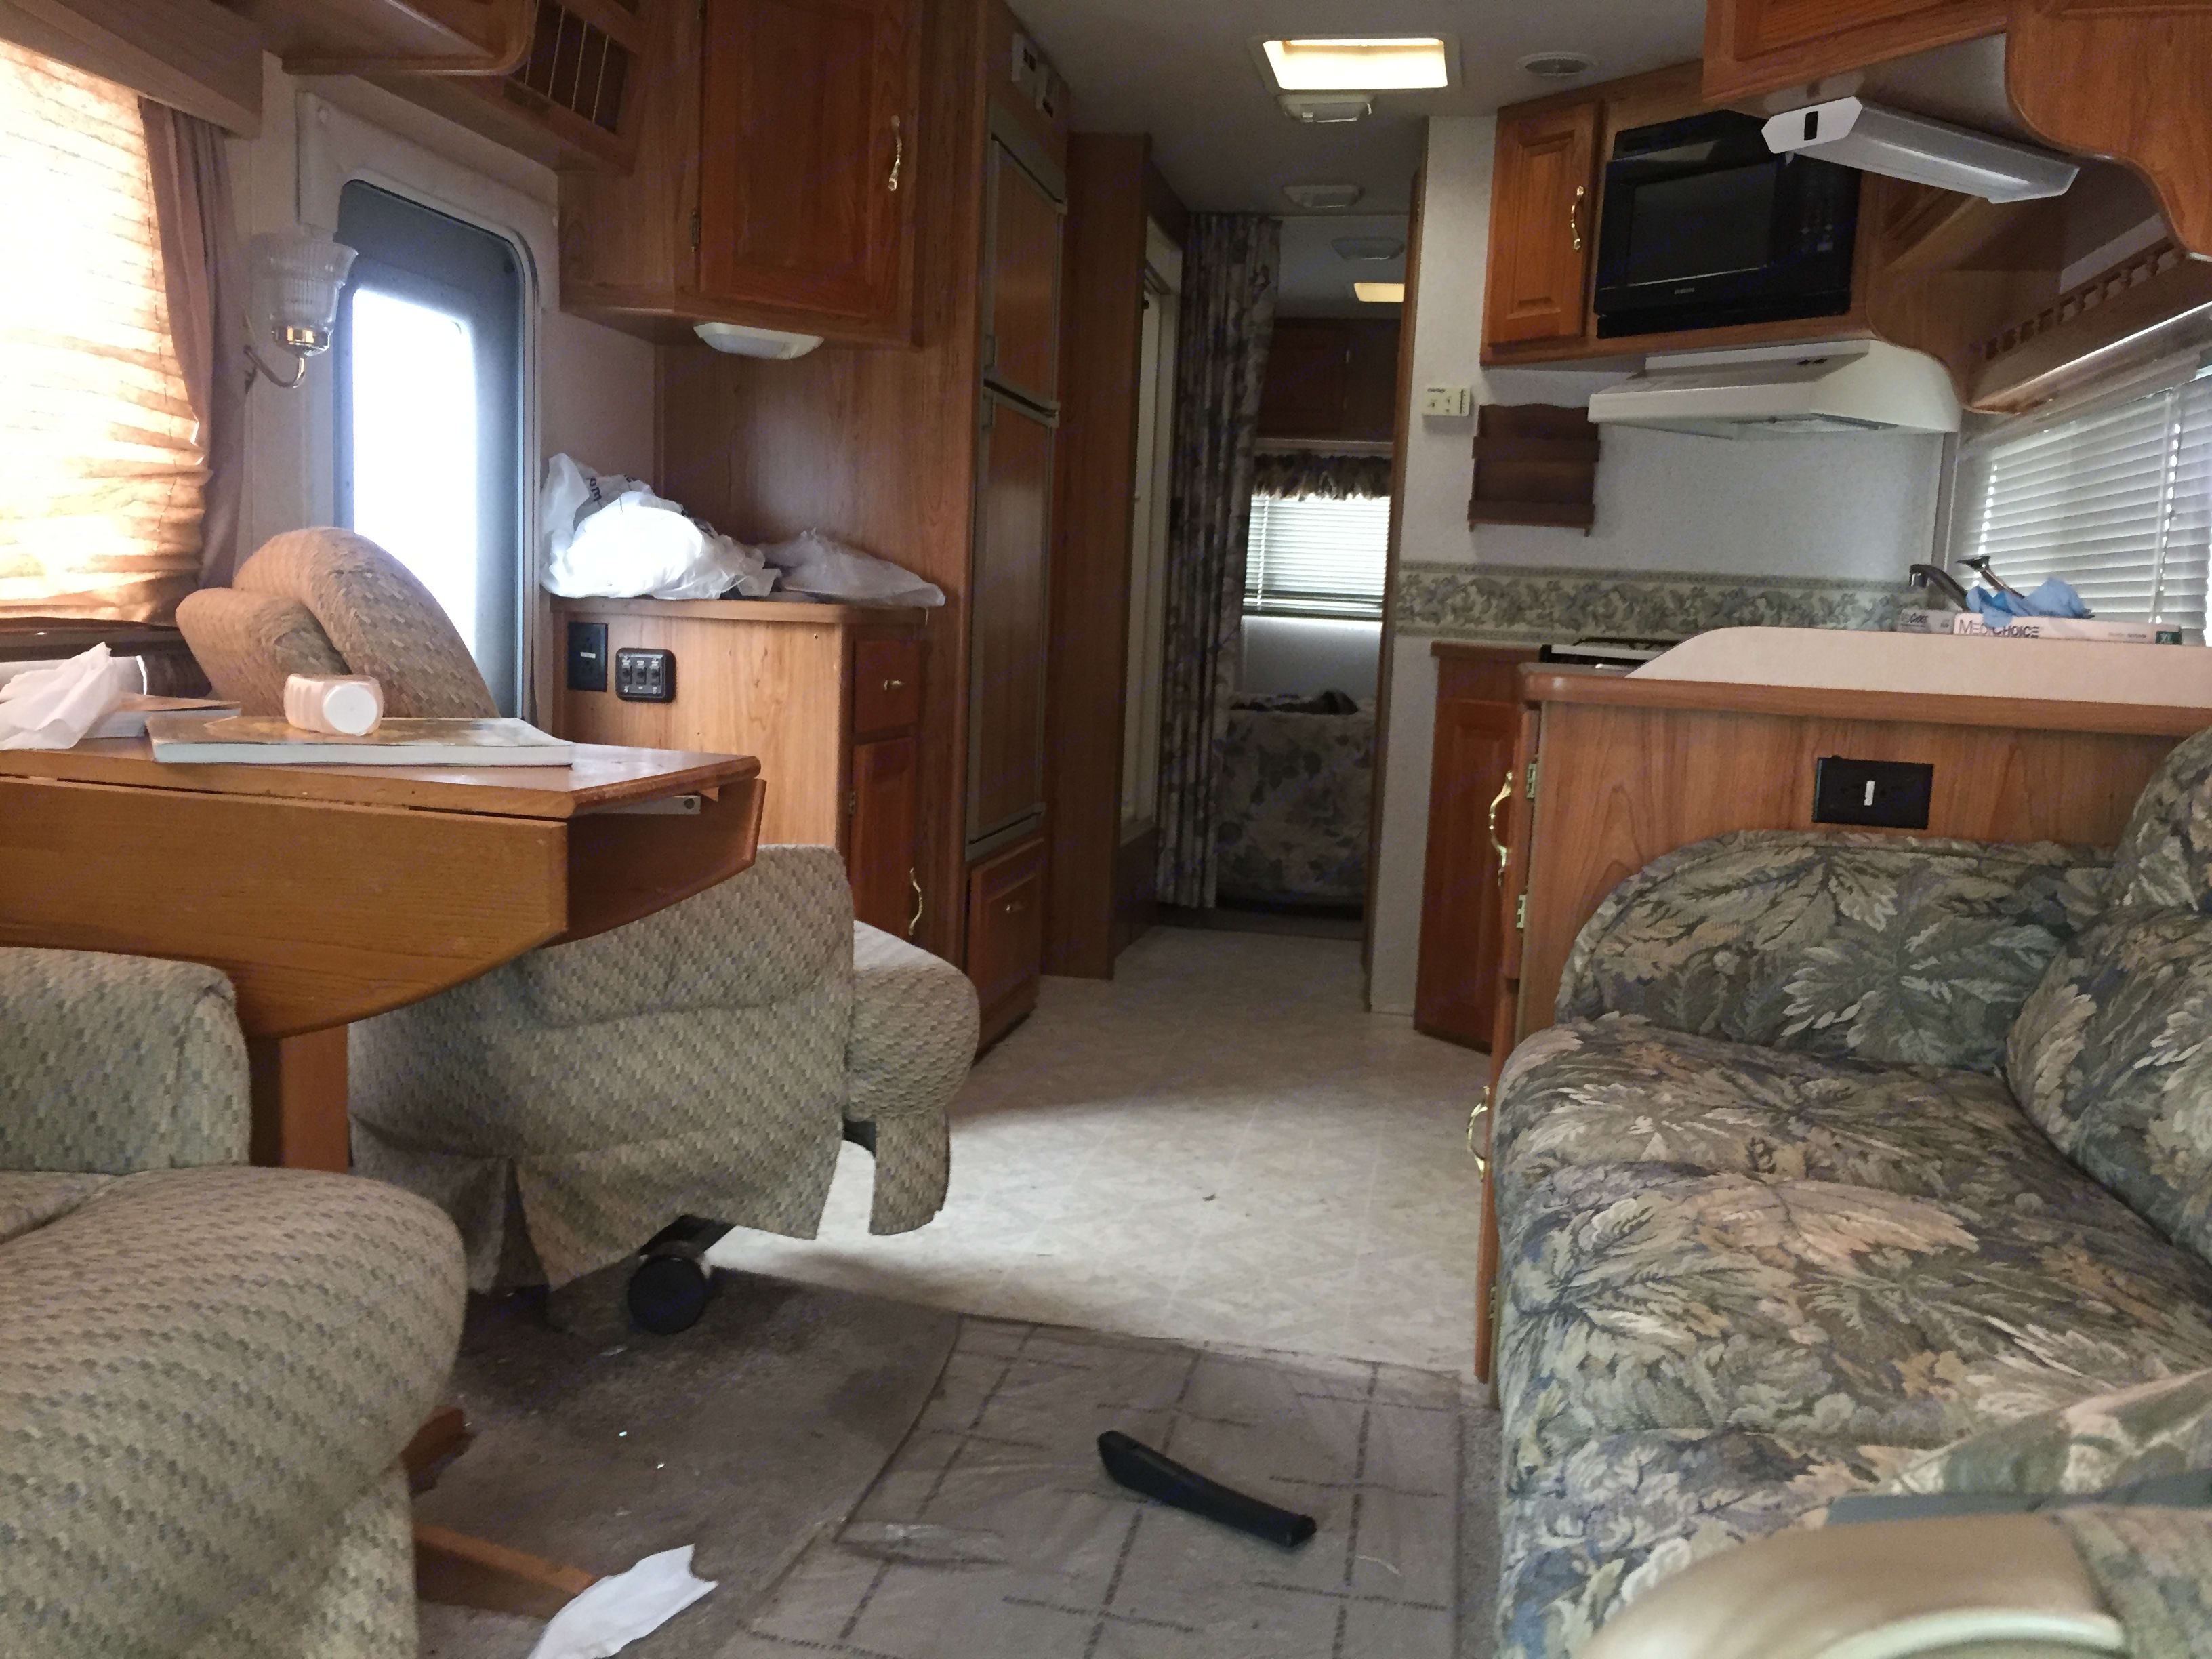 Relax and enjoy the comforts of the couch and air-conditioning wherever you go. coachman Santara 2001